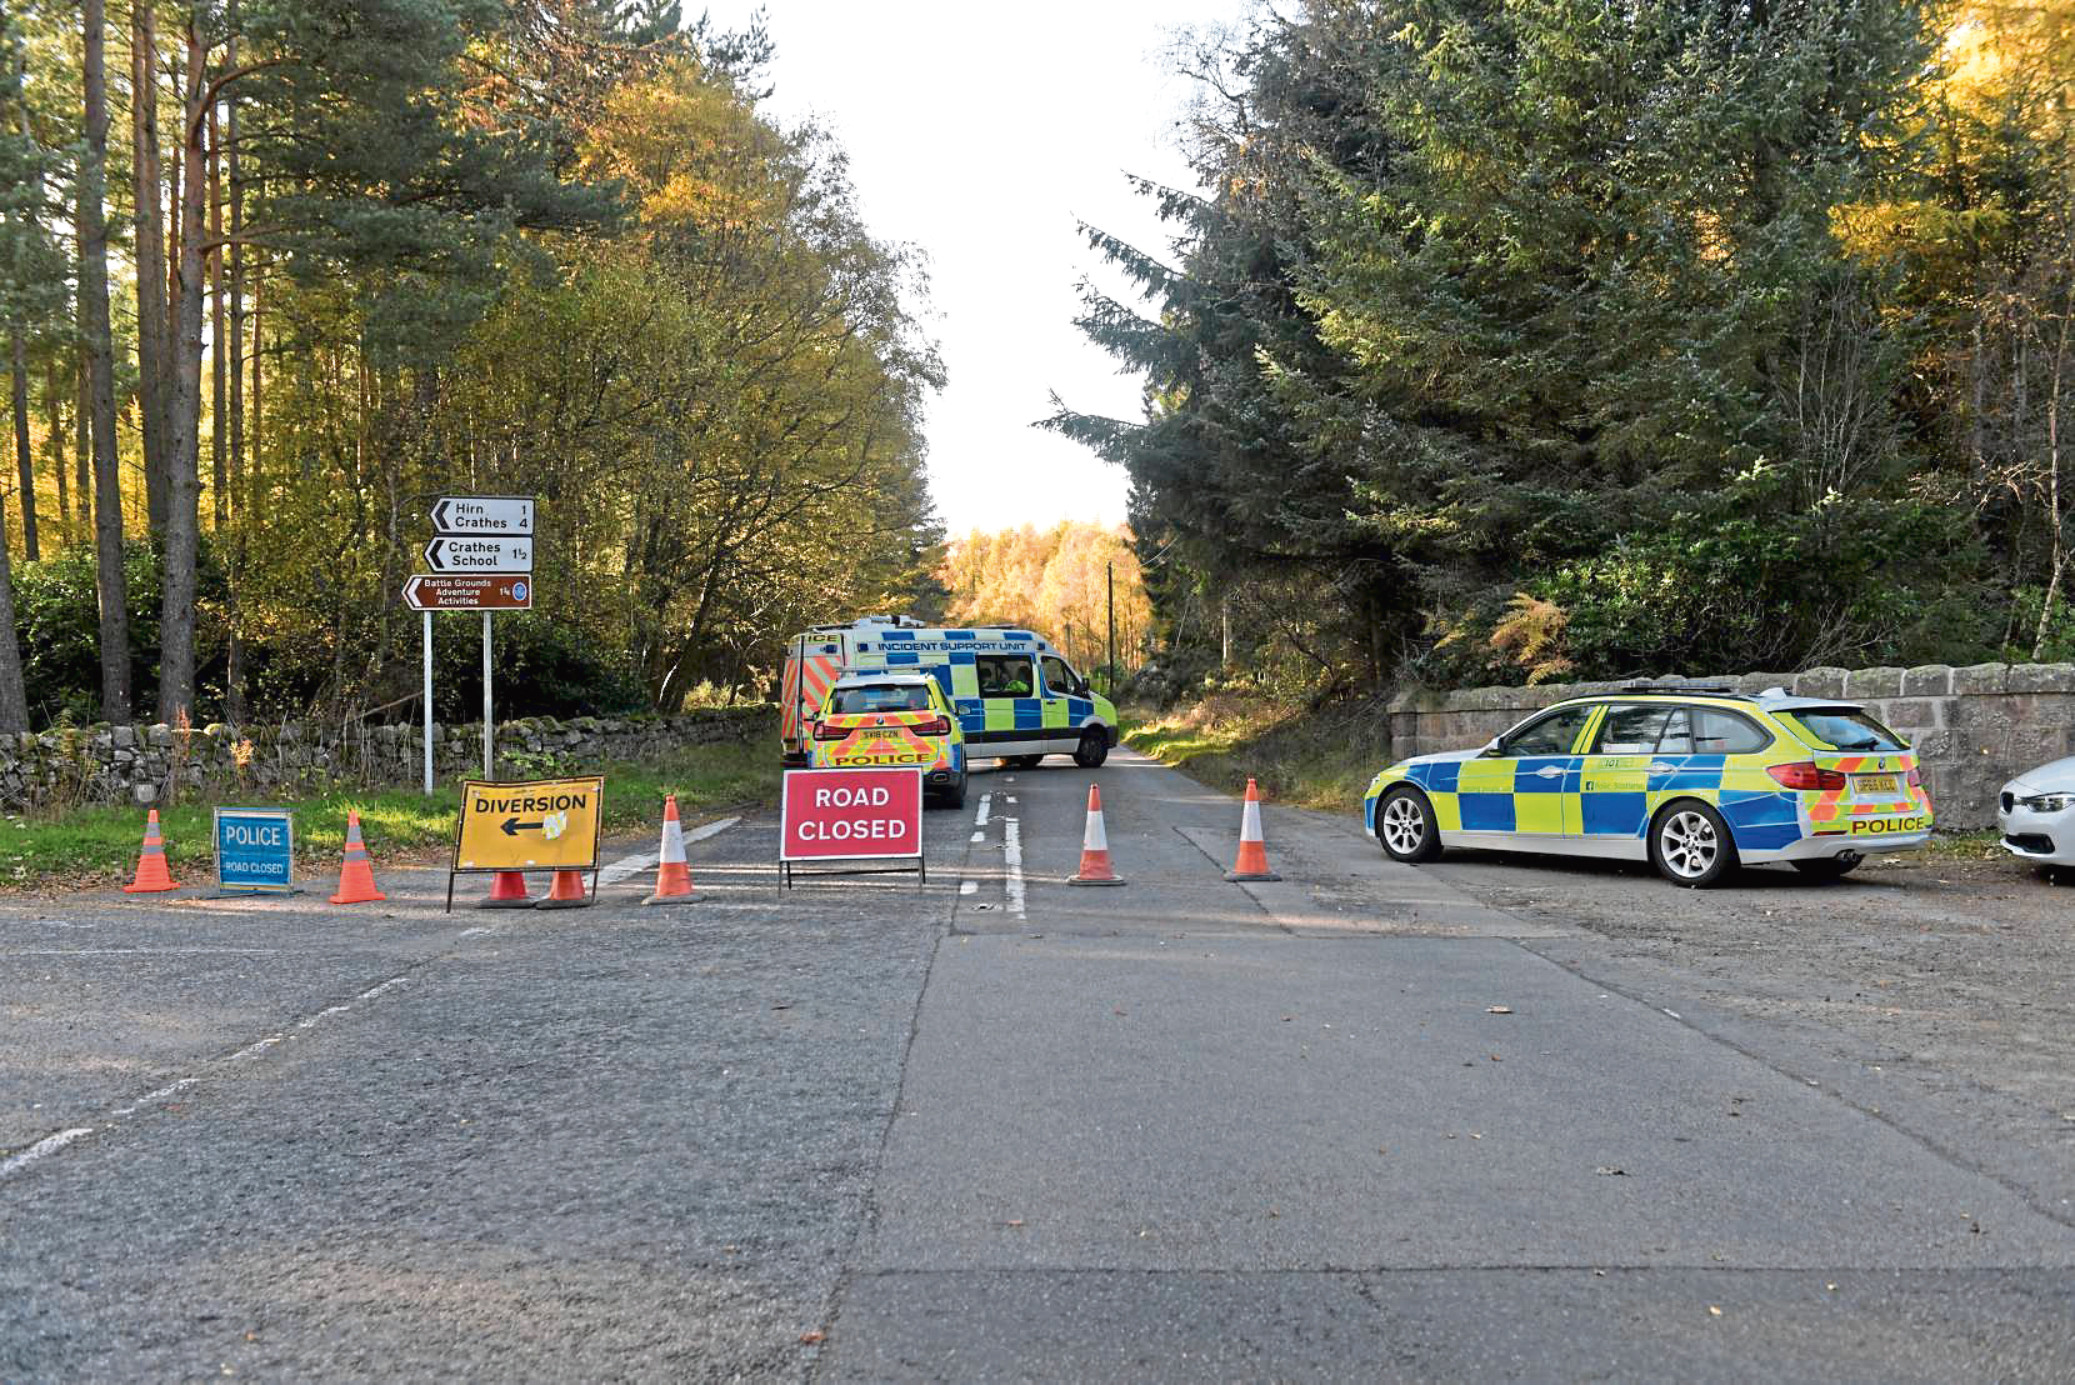 Police at the scene of the collision